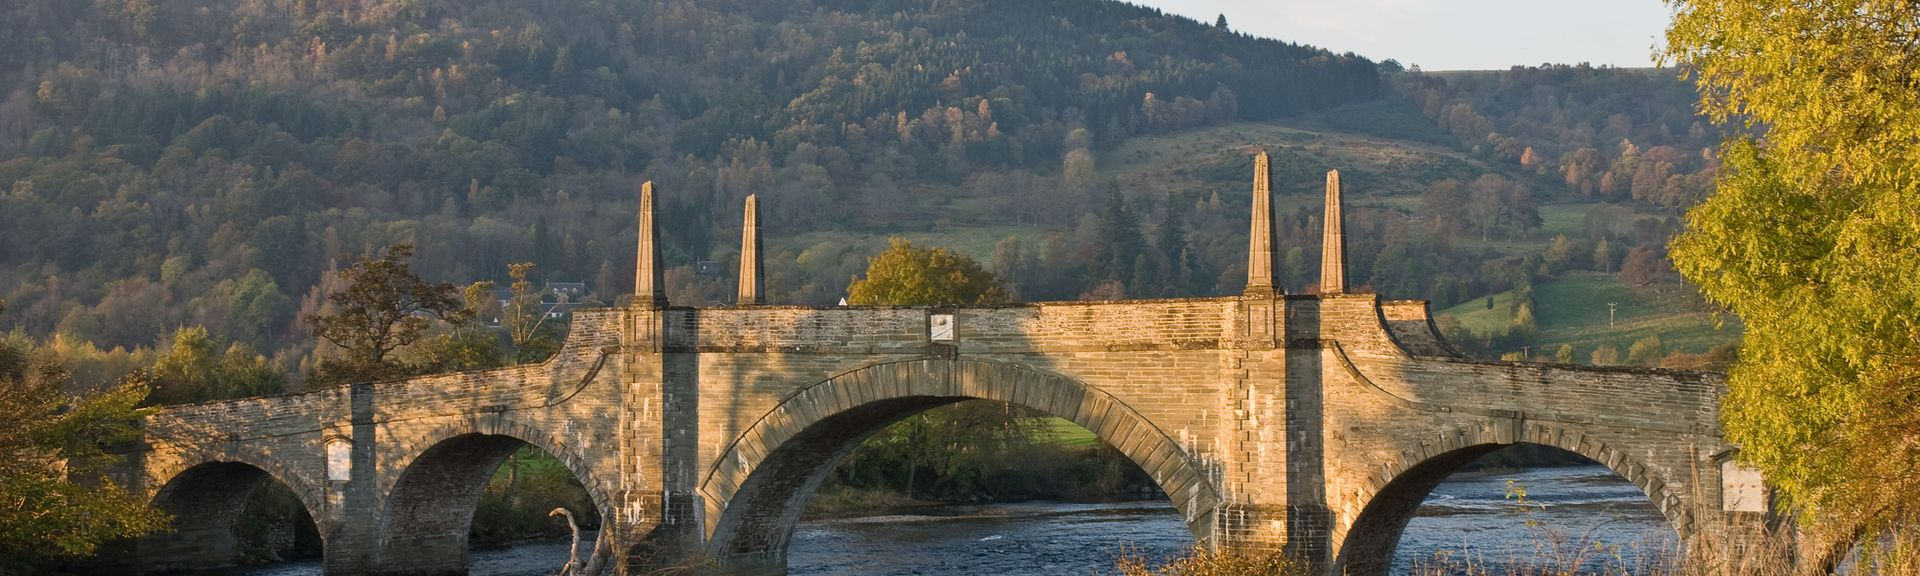 Aberfeldy, Perth and Kinross, UK